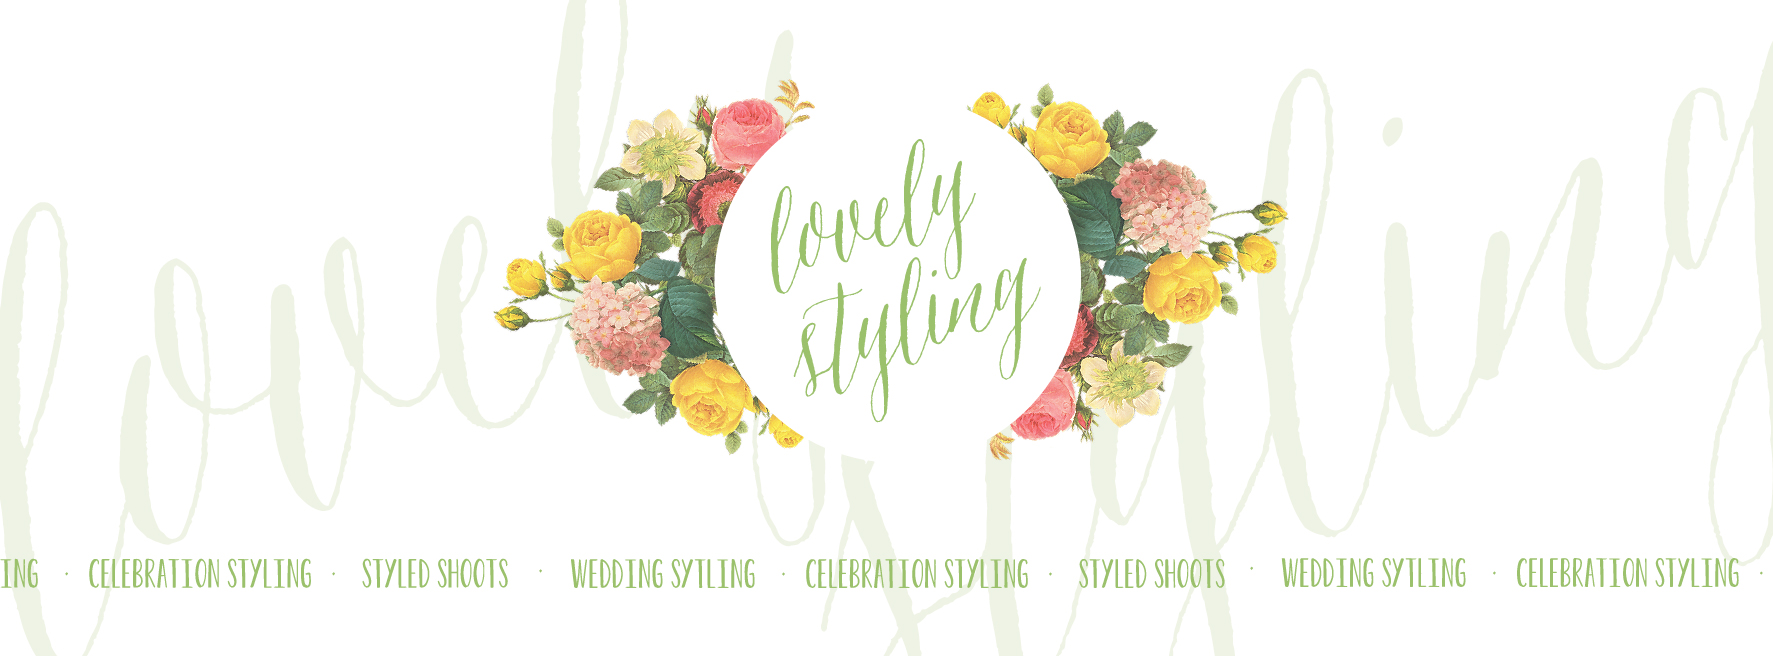 Lovely Styling - Dubai wedding stylist